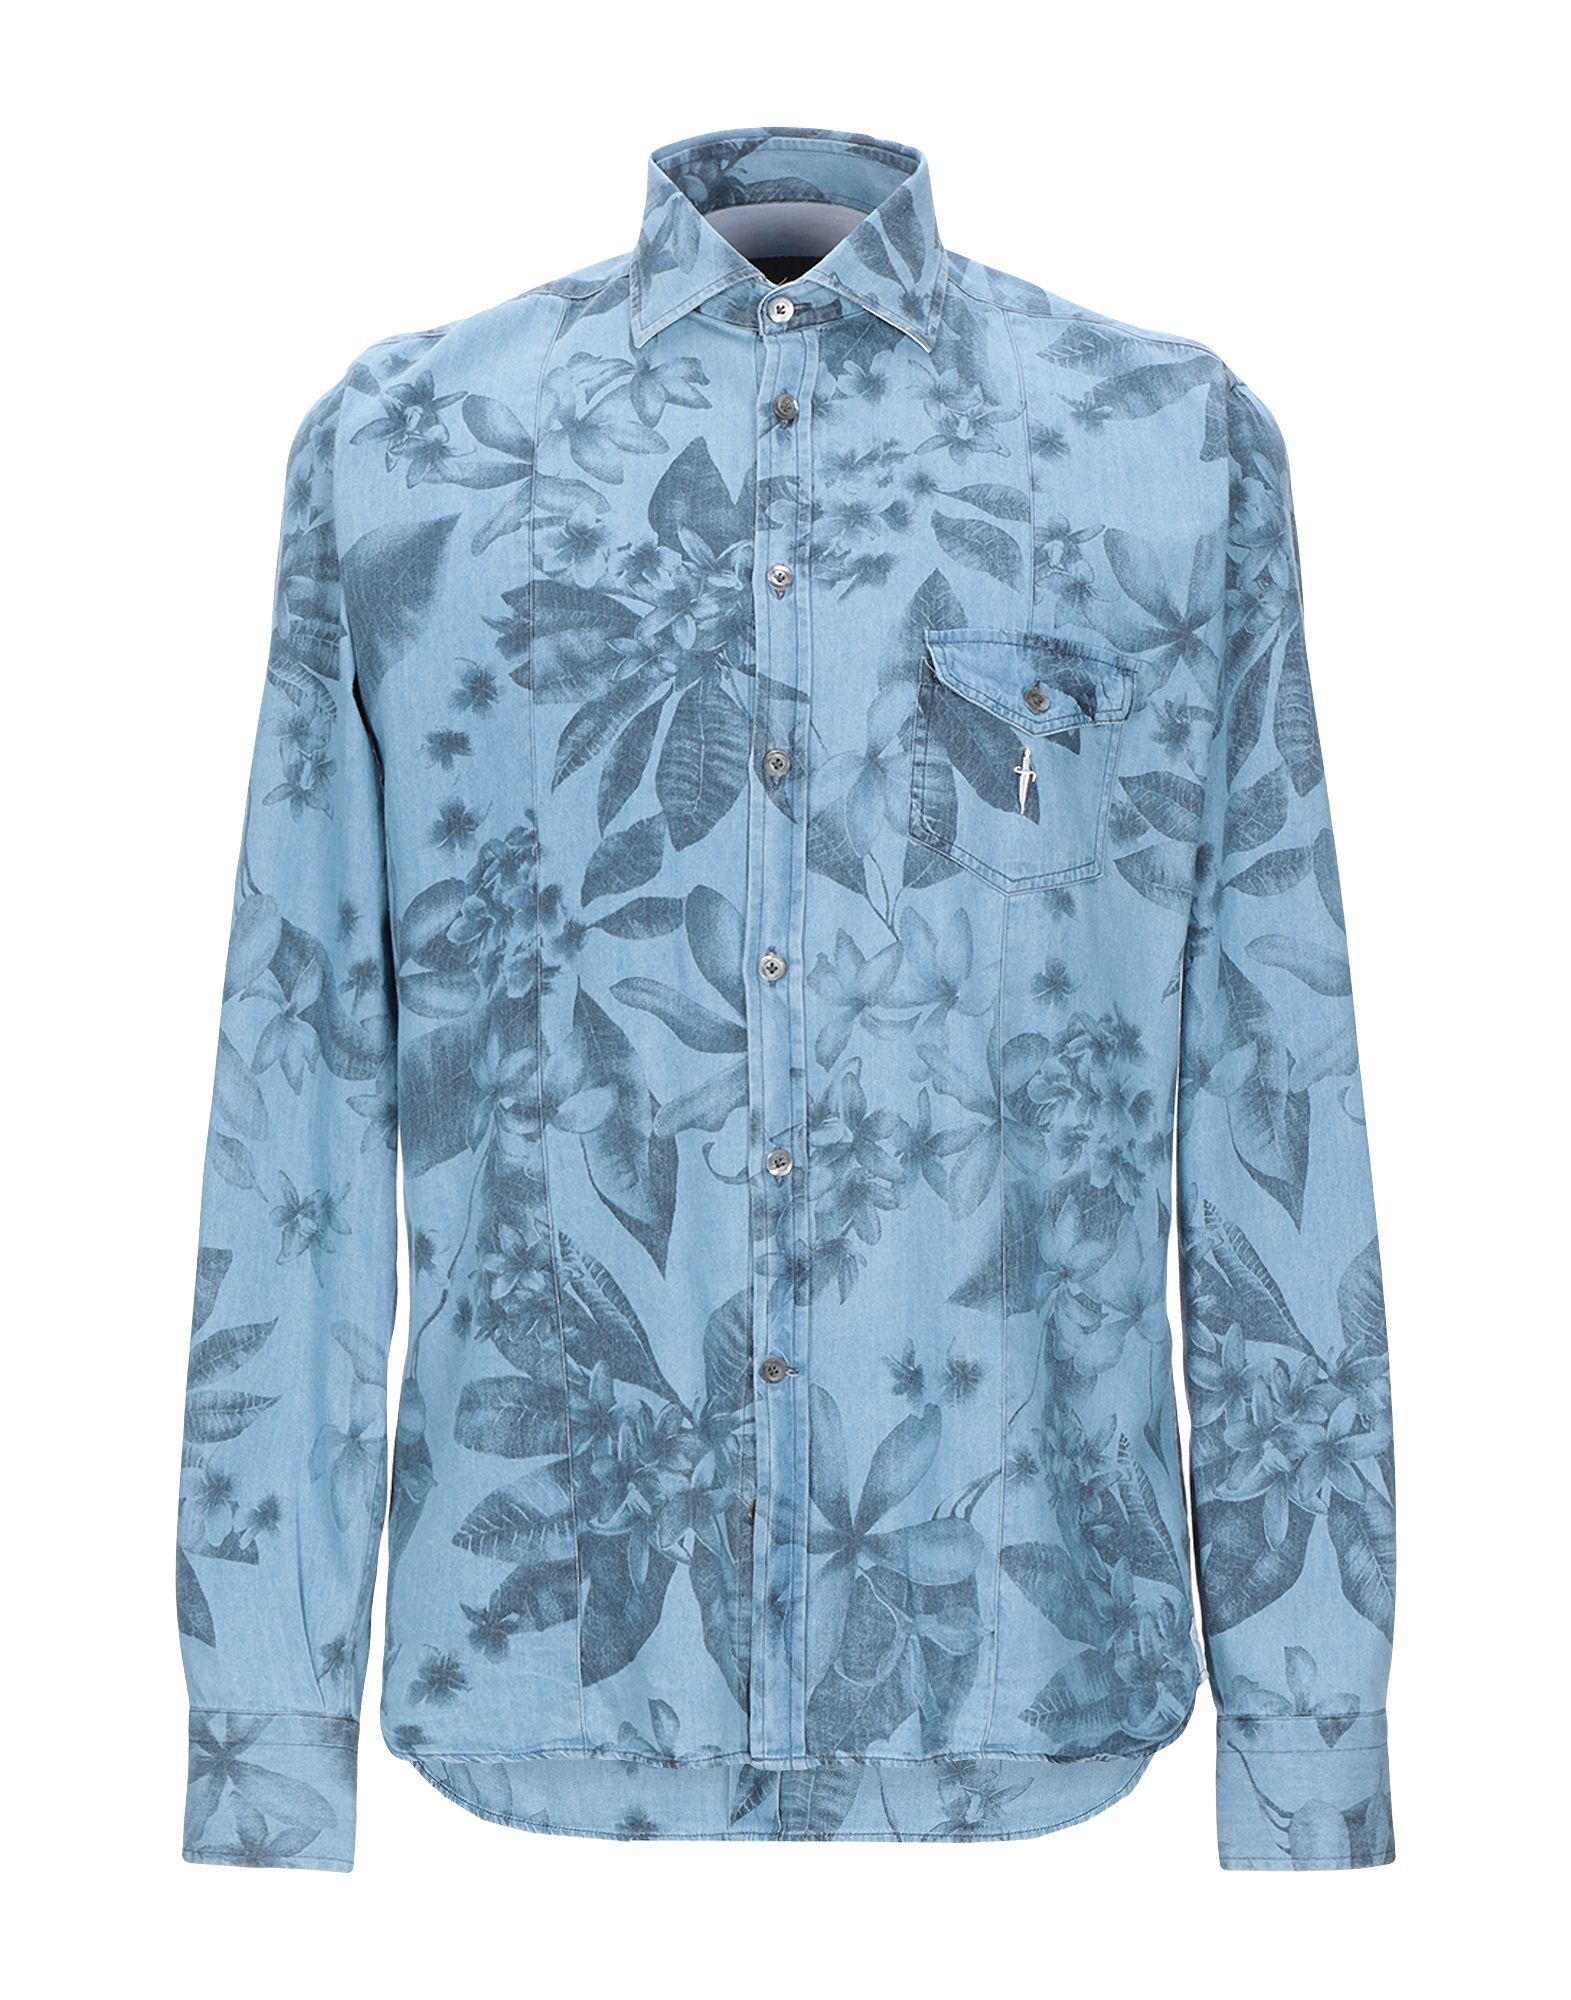 Cesare Paciotti 4Us Sky Blue Print Cotton Shirt